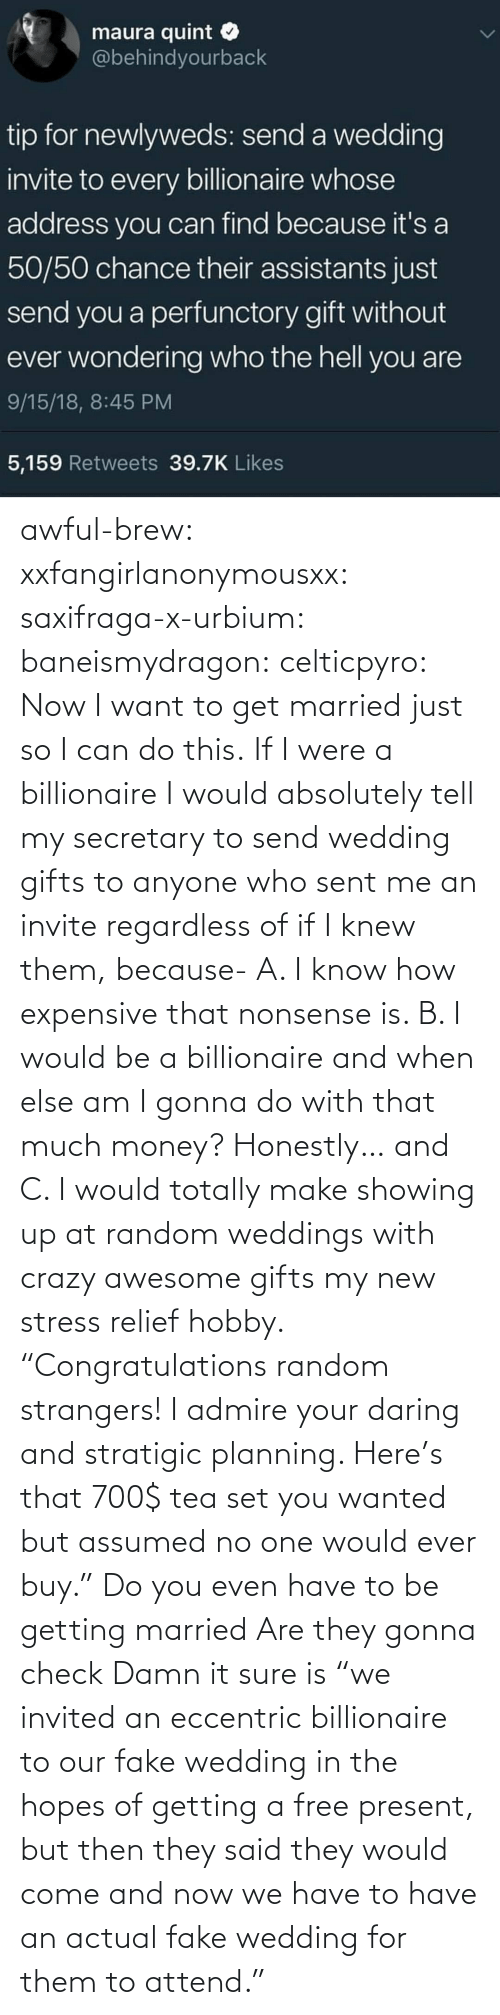 "come: awful-brew:  xxfangirlanonymousxx:  saxifraga-x-urbium:  baneismydragon:  celticpyro: Now I want to get married just so I can do this.  If I were a billionaire I would absolutely tell my secretary to send wedding gifts to anyone who sent me an invite regardless of if I knew them, because- A. I know how expensive that nonsense is. B. I would be a billionaire and when else am I gonna do with that much money? Honestly… and C. I would totally make showing up at random weddings with crazy awesome gifts my new stress relief hobby. ""Congratulations random strangers! I admire your daring and stratigic planning. Here's that 700$ tea set you wanted but assumed no one would ever buy.""   Do you even have to be getting married Are they gonna check   Damn it sure is  ""we invited an eccentric billionaire to our fake wedding in the hopes of getting a free present, but then they said they would come and now we have to have an actual fake wedding for them to attend."""